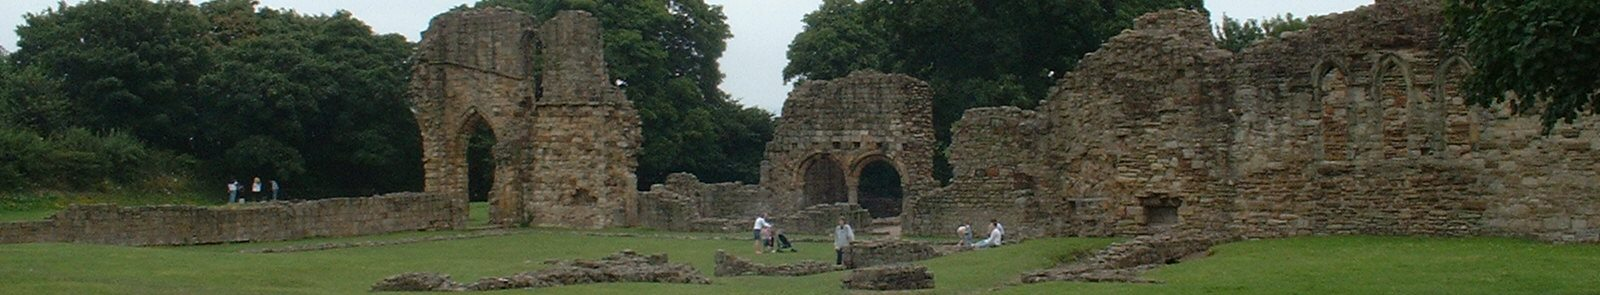 Basingwerk Abbey: ruins of the church and chapter house